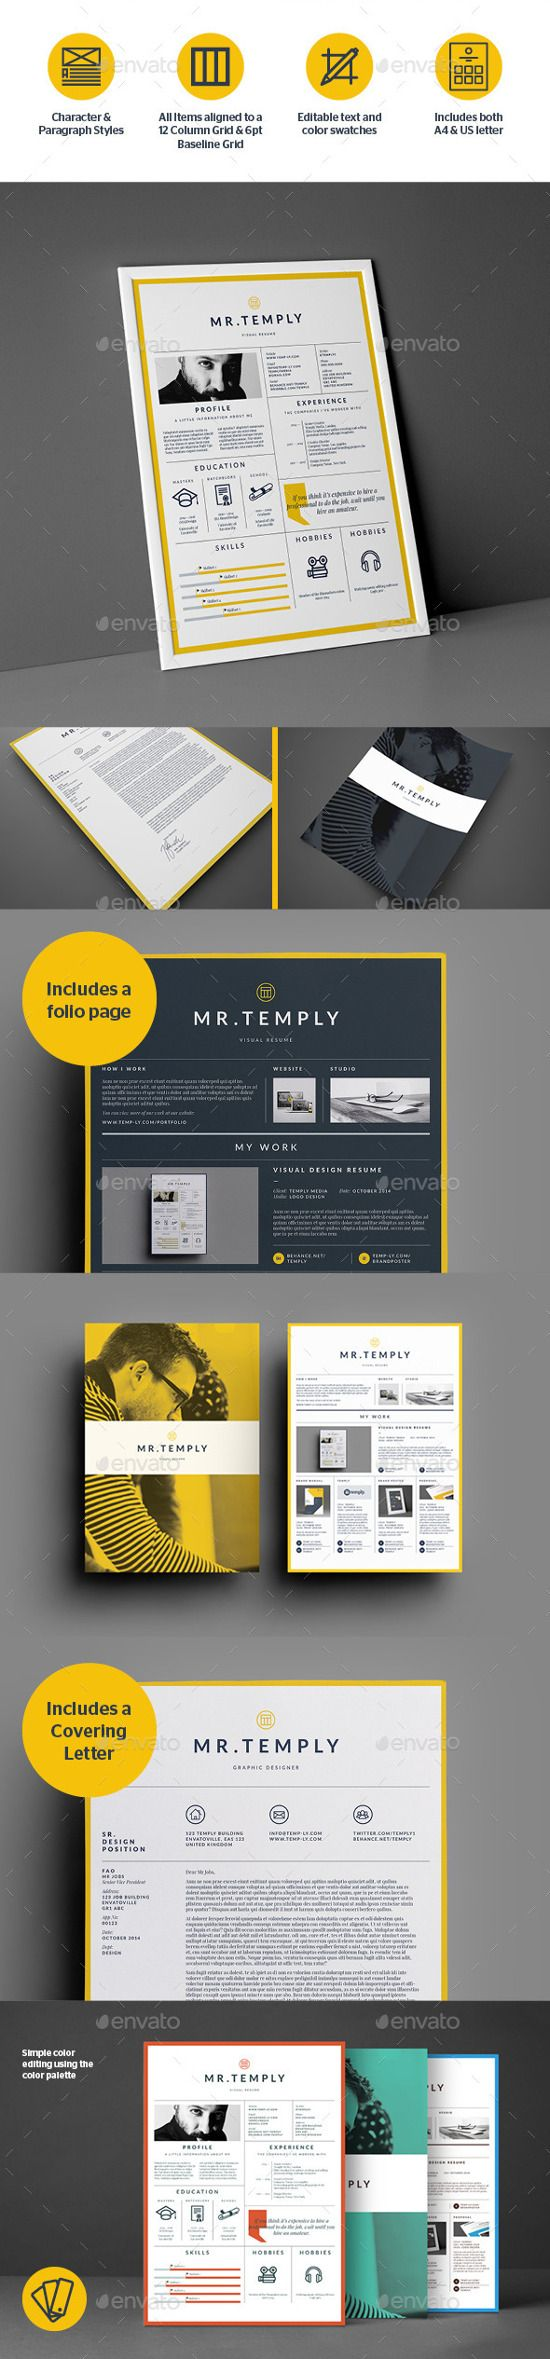 Best Infographic Resume Templates for You 275